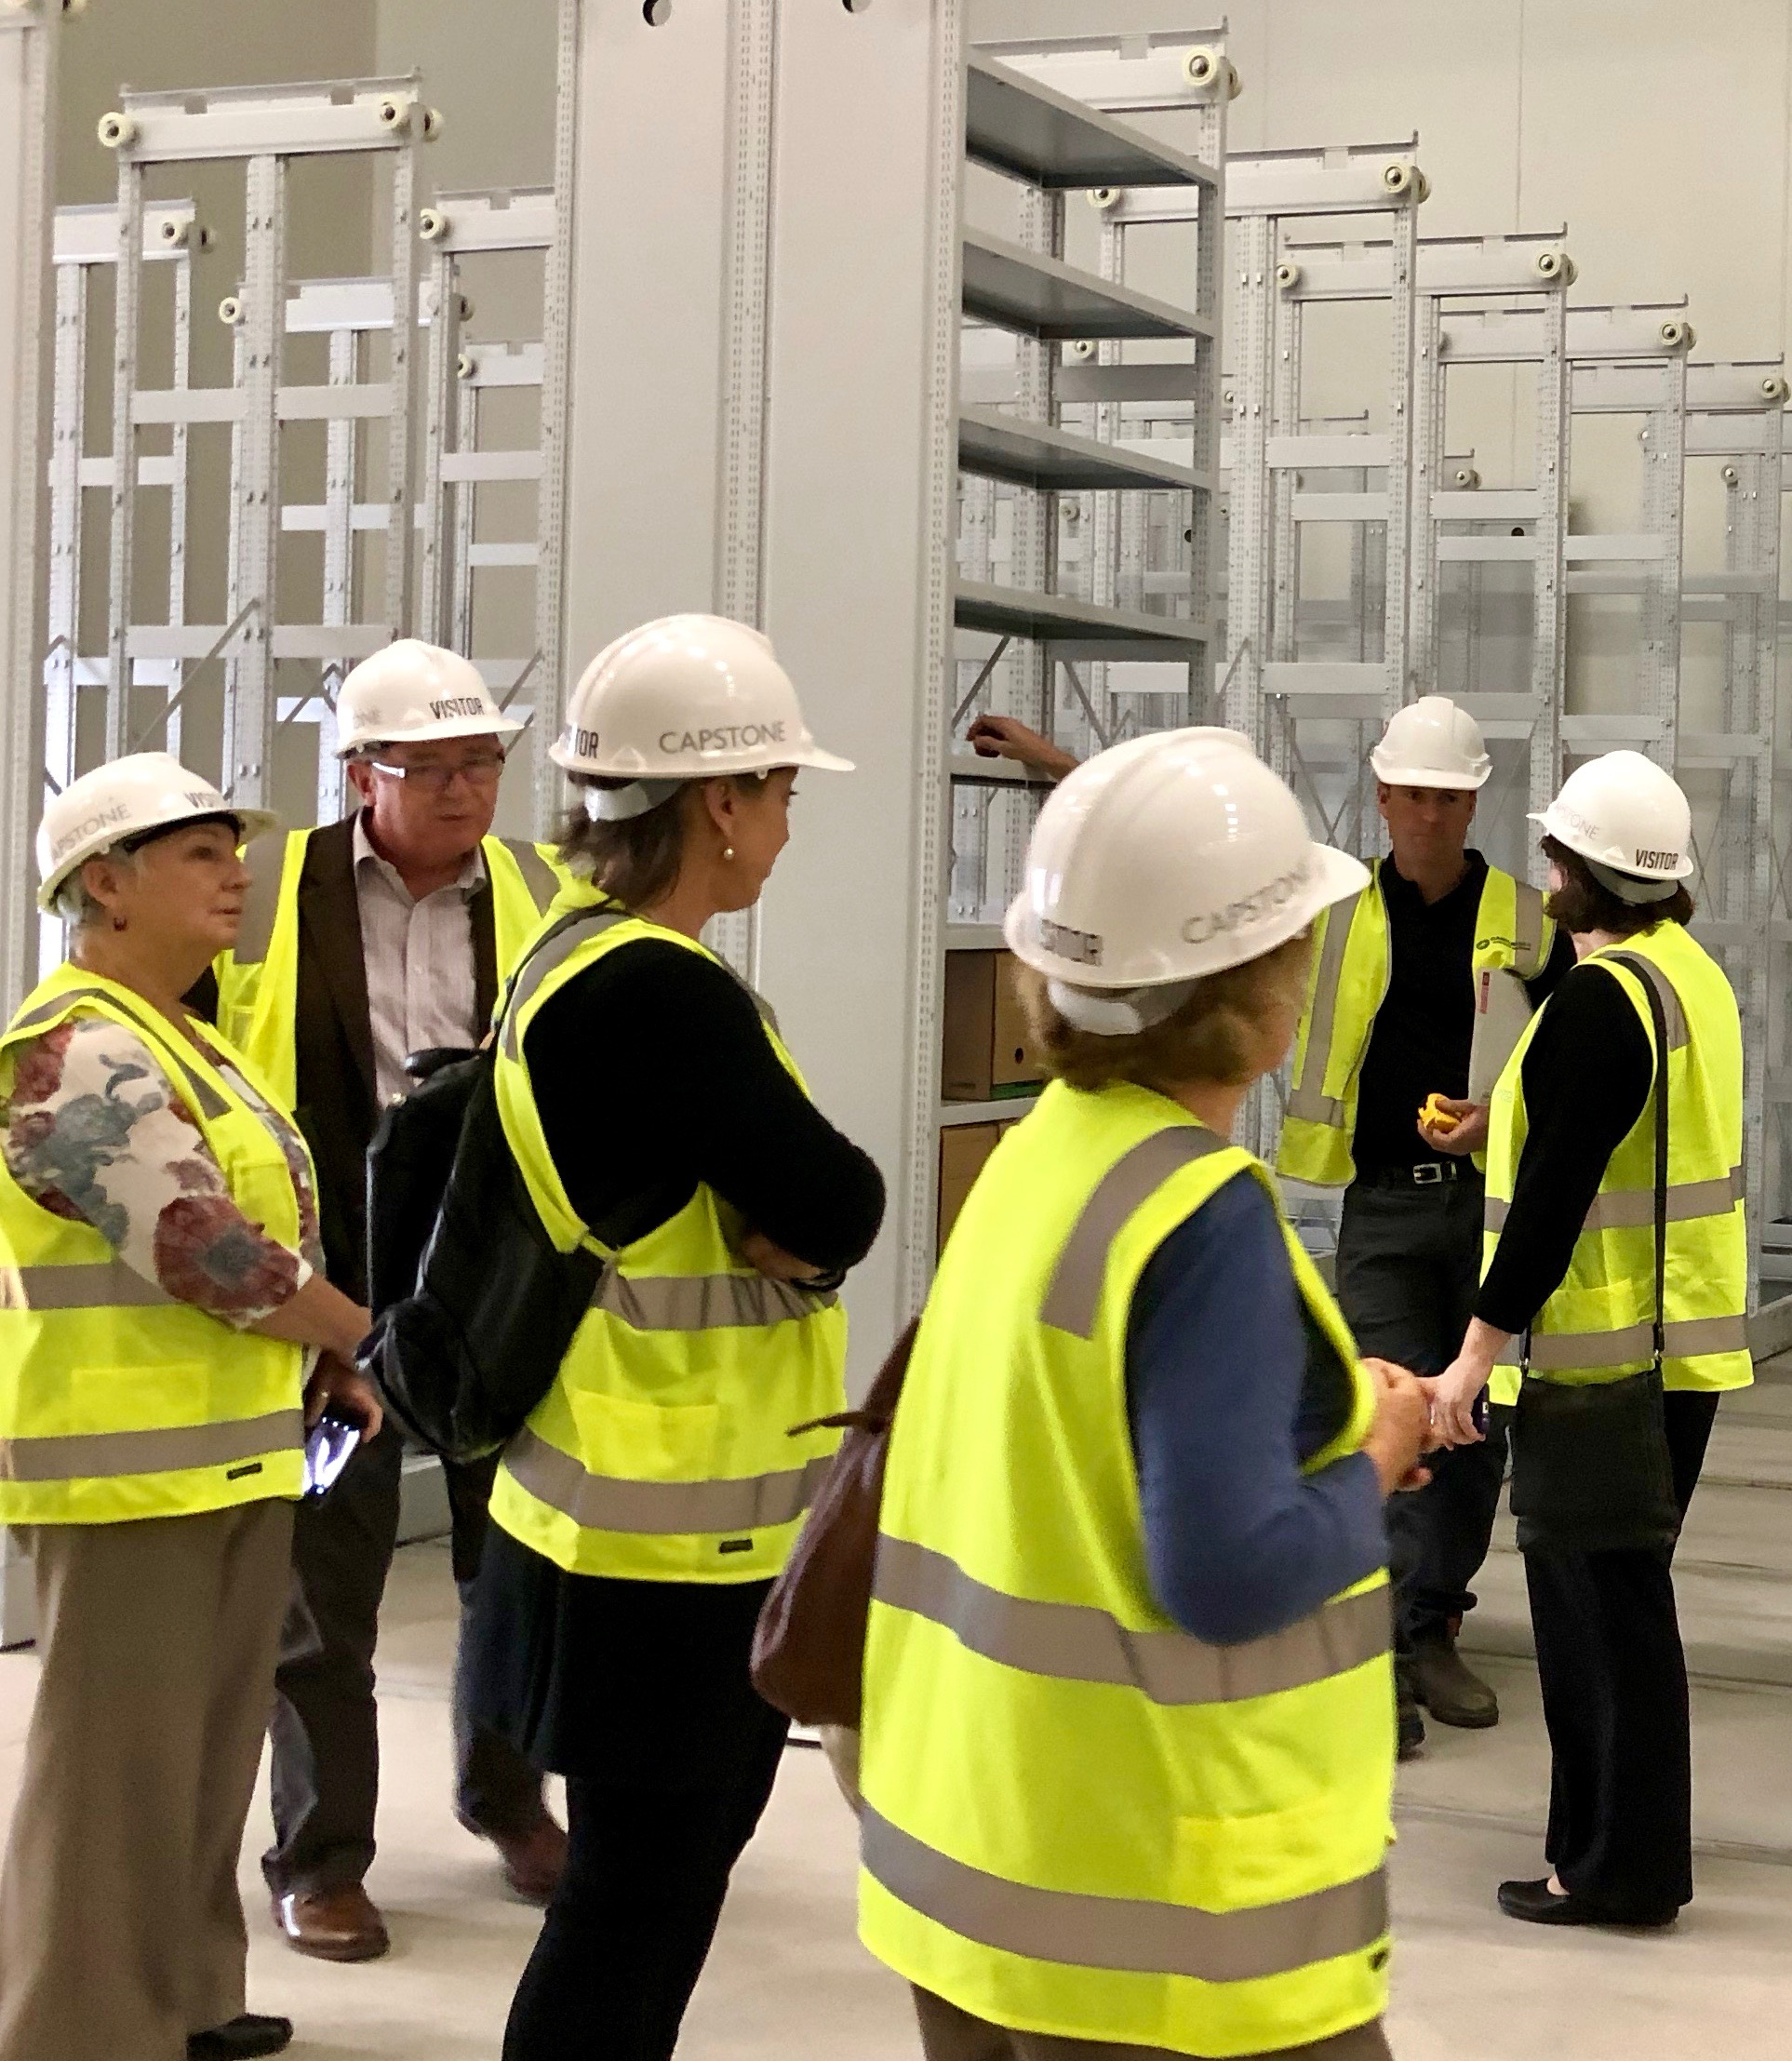 Members of the National Archives Perth Consultative Forum inspecting the new Belmont Repository, with Austrian compactuses used in the Louvre and other major European institutions being installed here — a first in Australia. Note Diane Foster (WAGs), Gerard Foley (SRO) and Helen Munt (PHA and HC) on the left